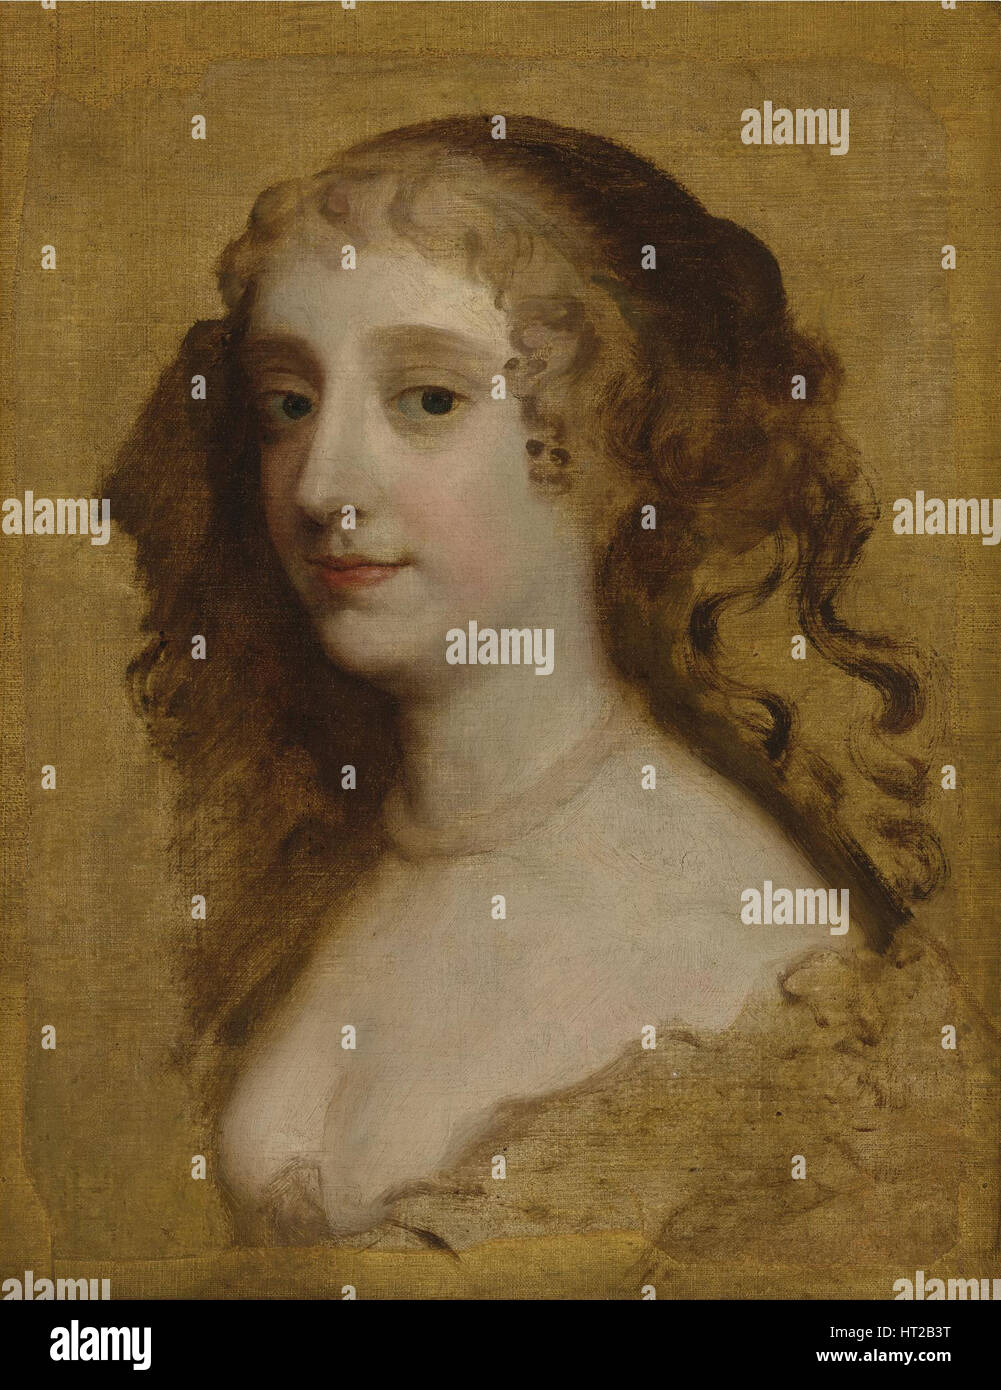 Portrait of Lady Anne Hyde, Duchess of York (1637-1671). Artist: Lely, Sir Peter (1618-1680) - Stock Image